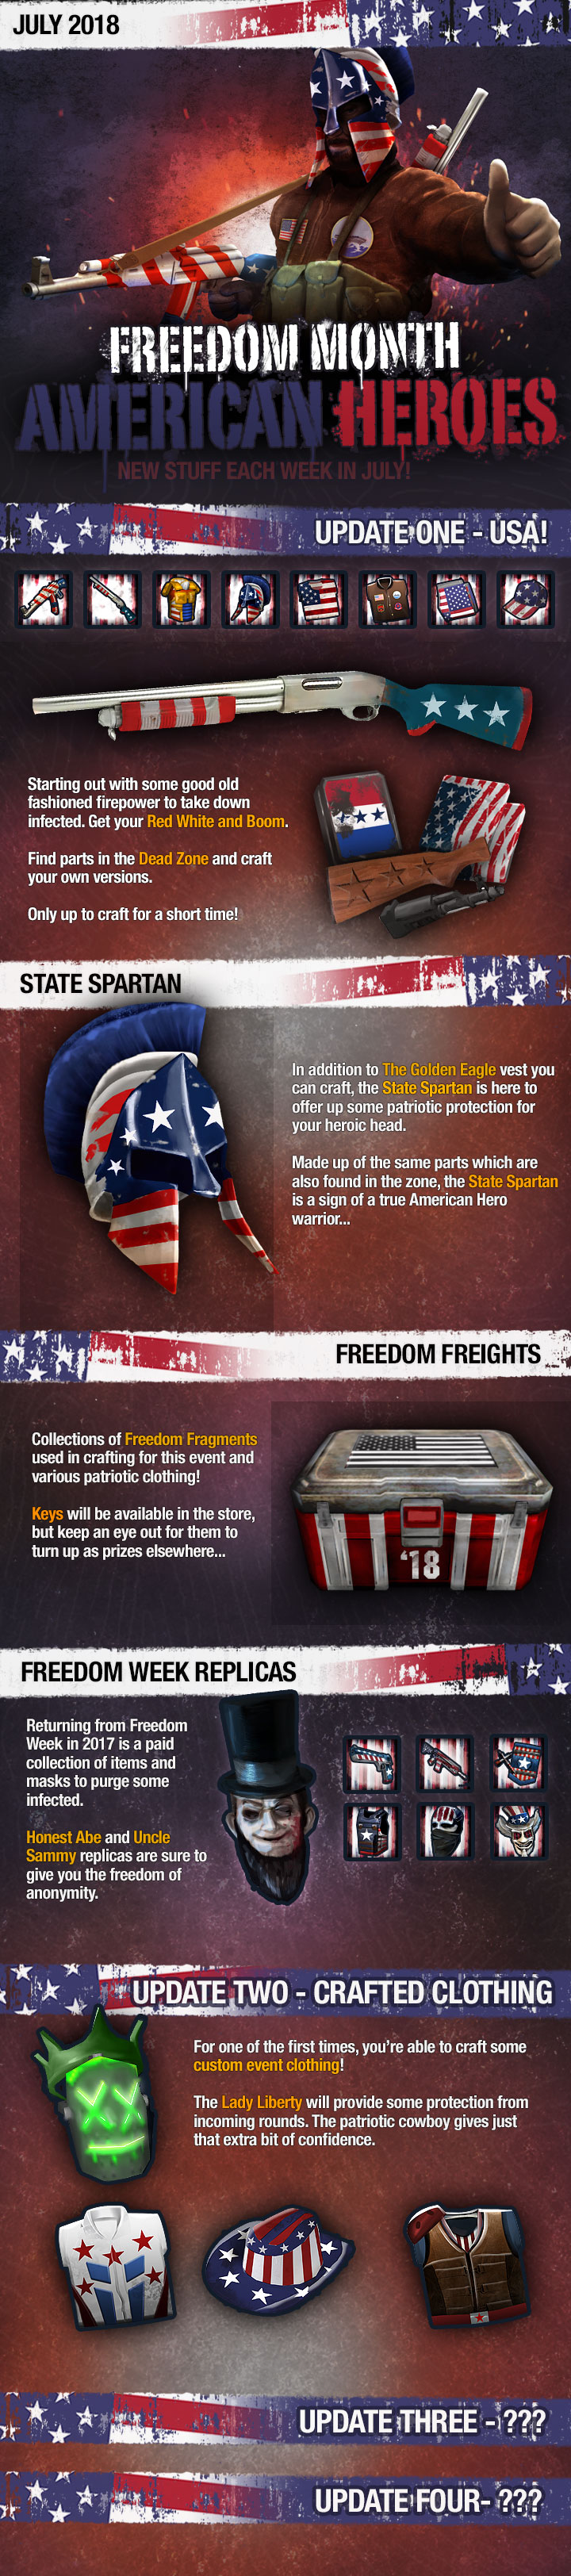 freedommonthinfo._v2.jpg